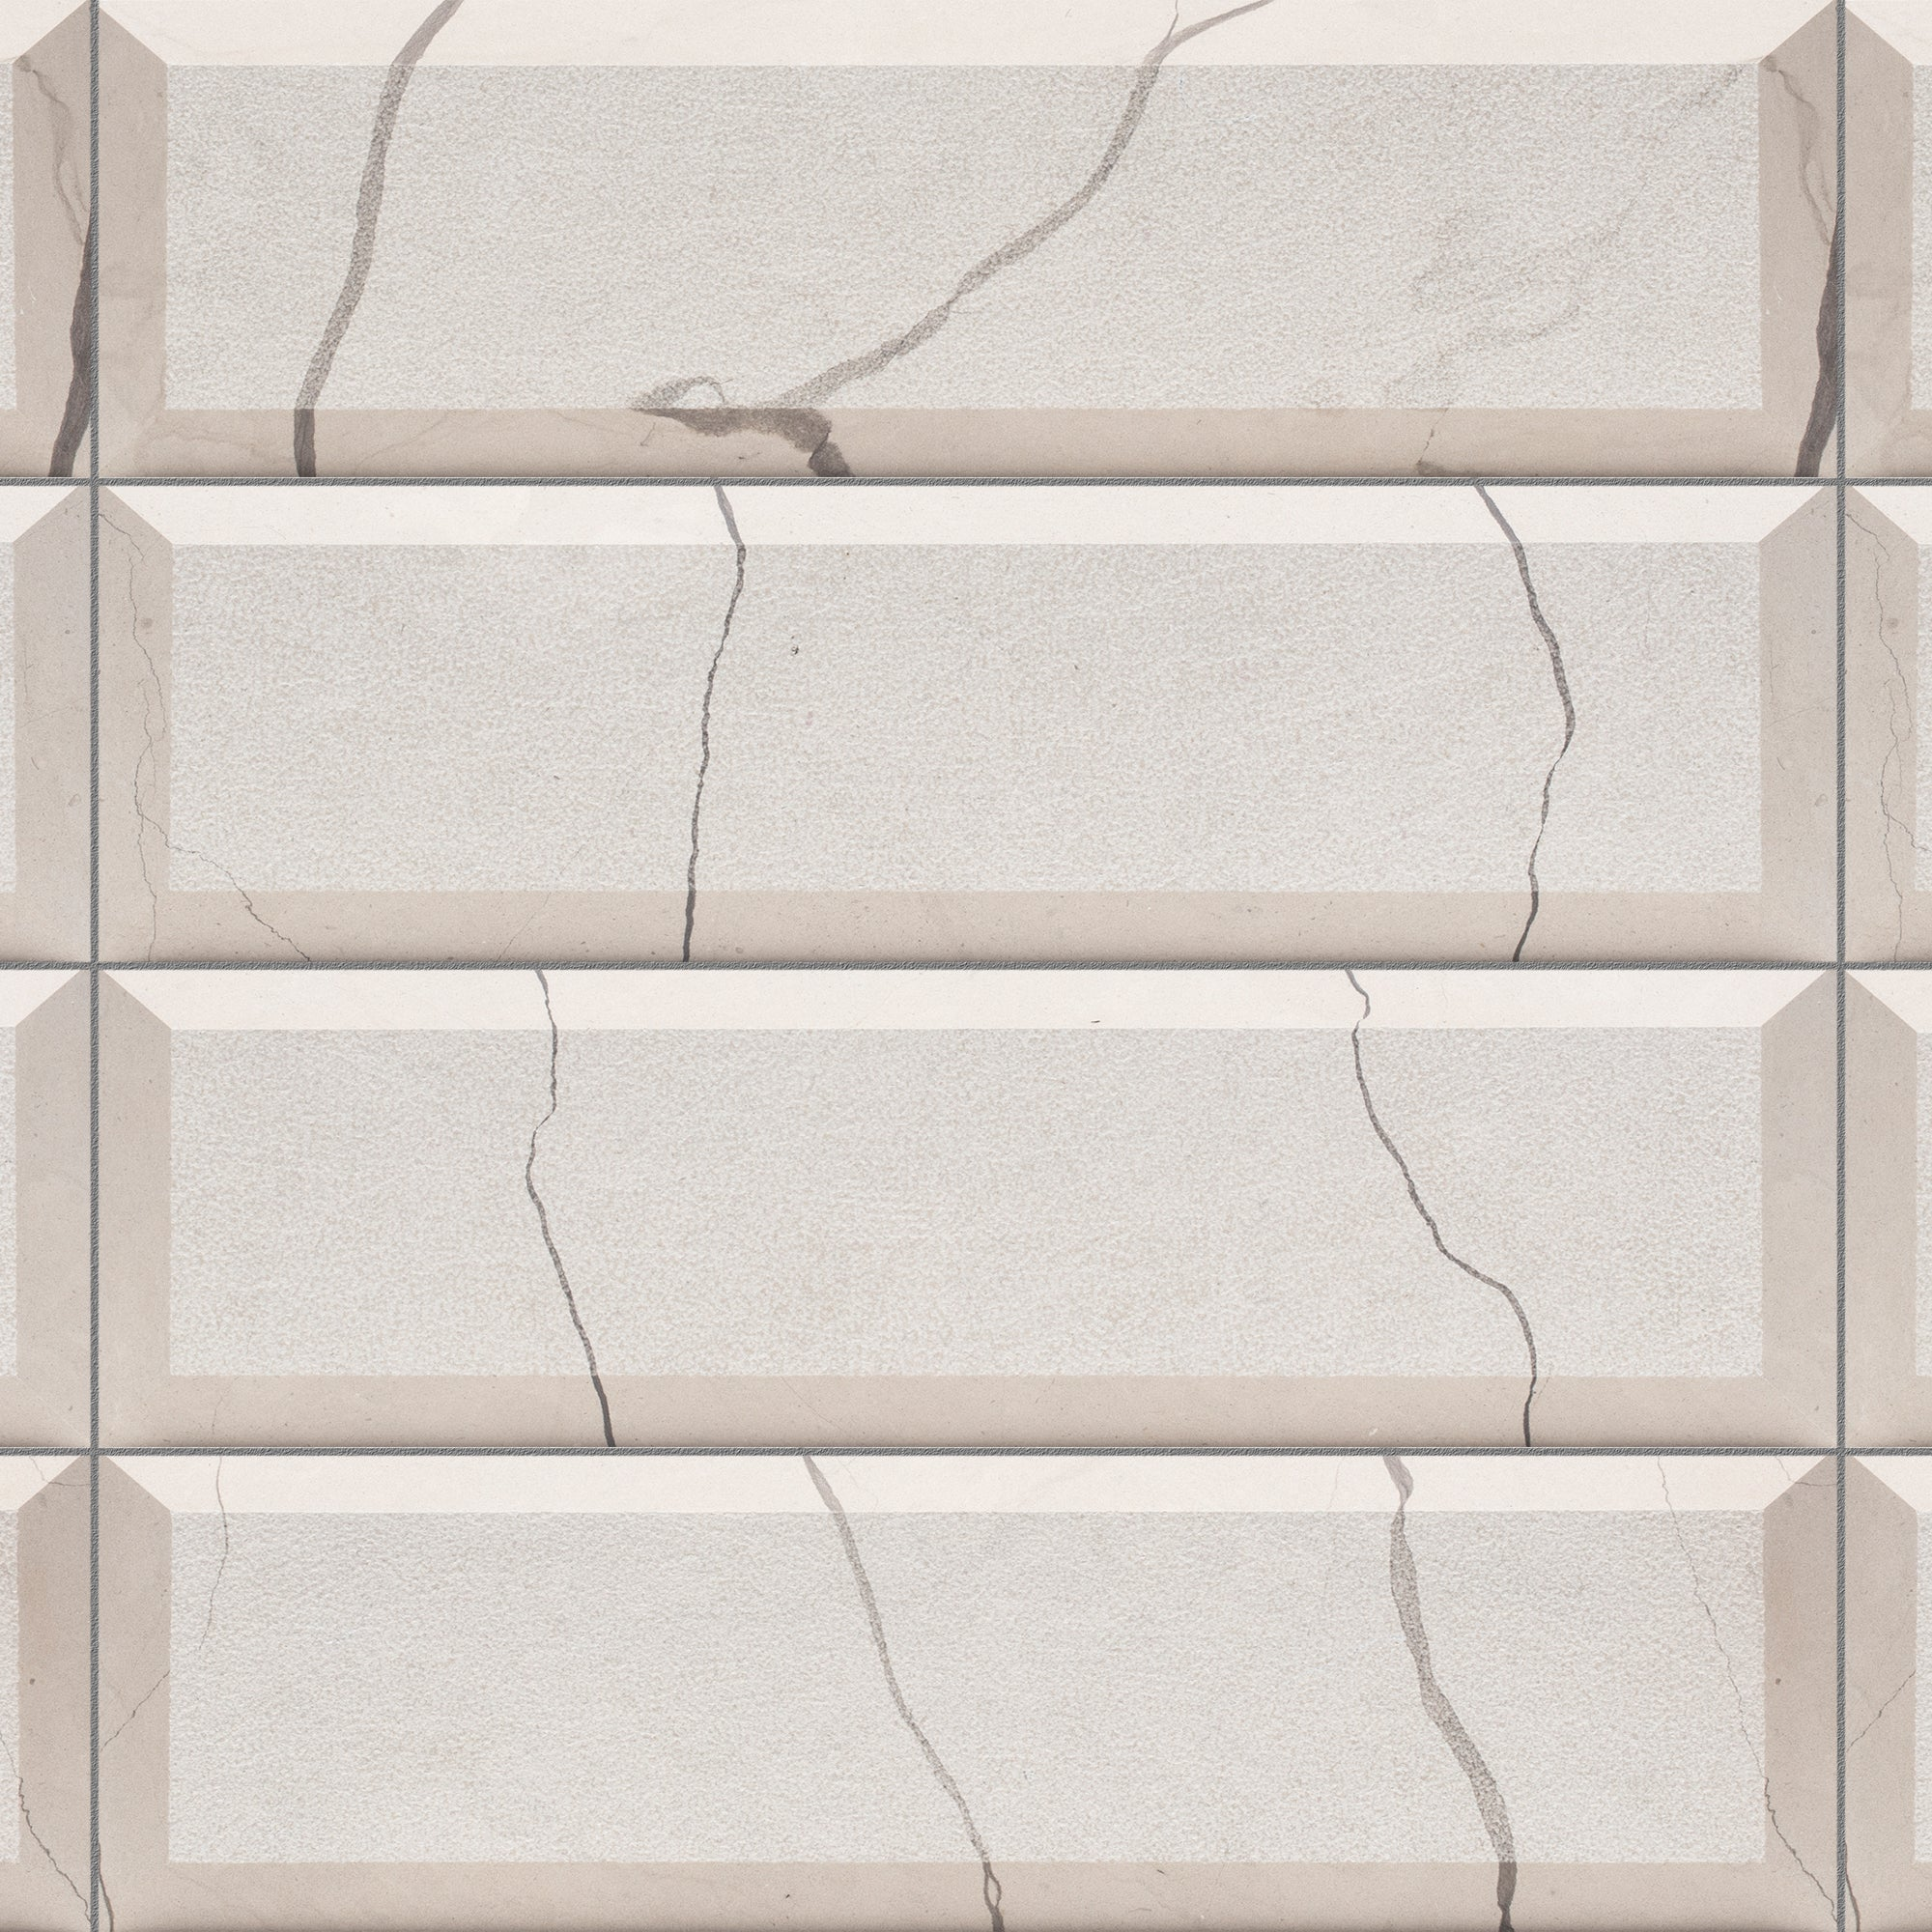 Piqué Bevel Balkan Beige Marble Swatch Card  Textured Samples product photo